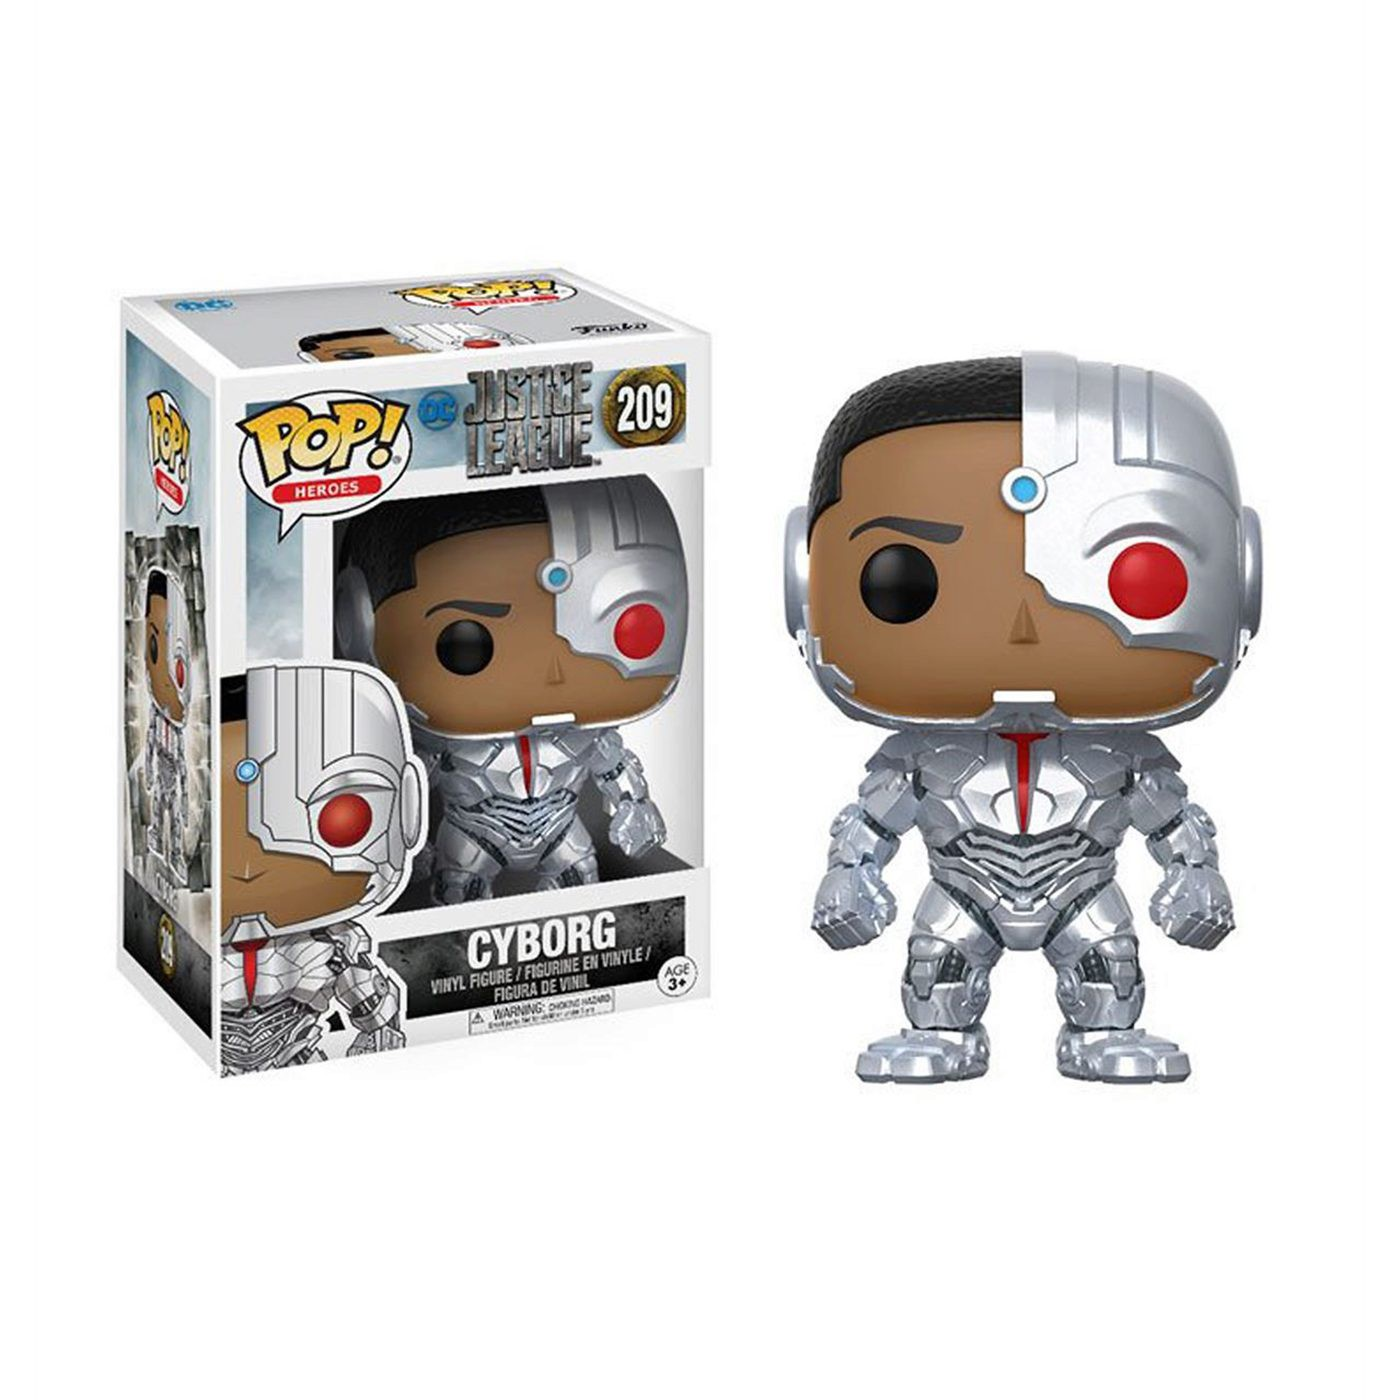 Cyborg Justice League Movie Funko Pop Vinyl Figure